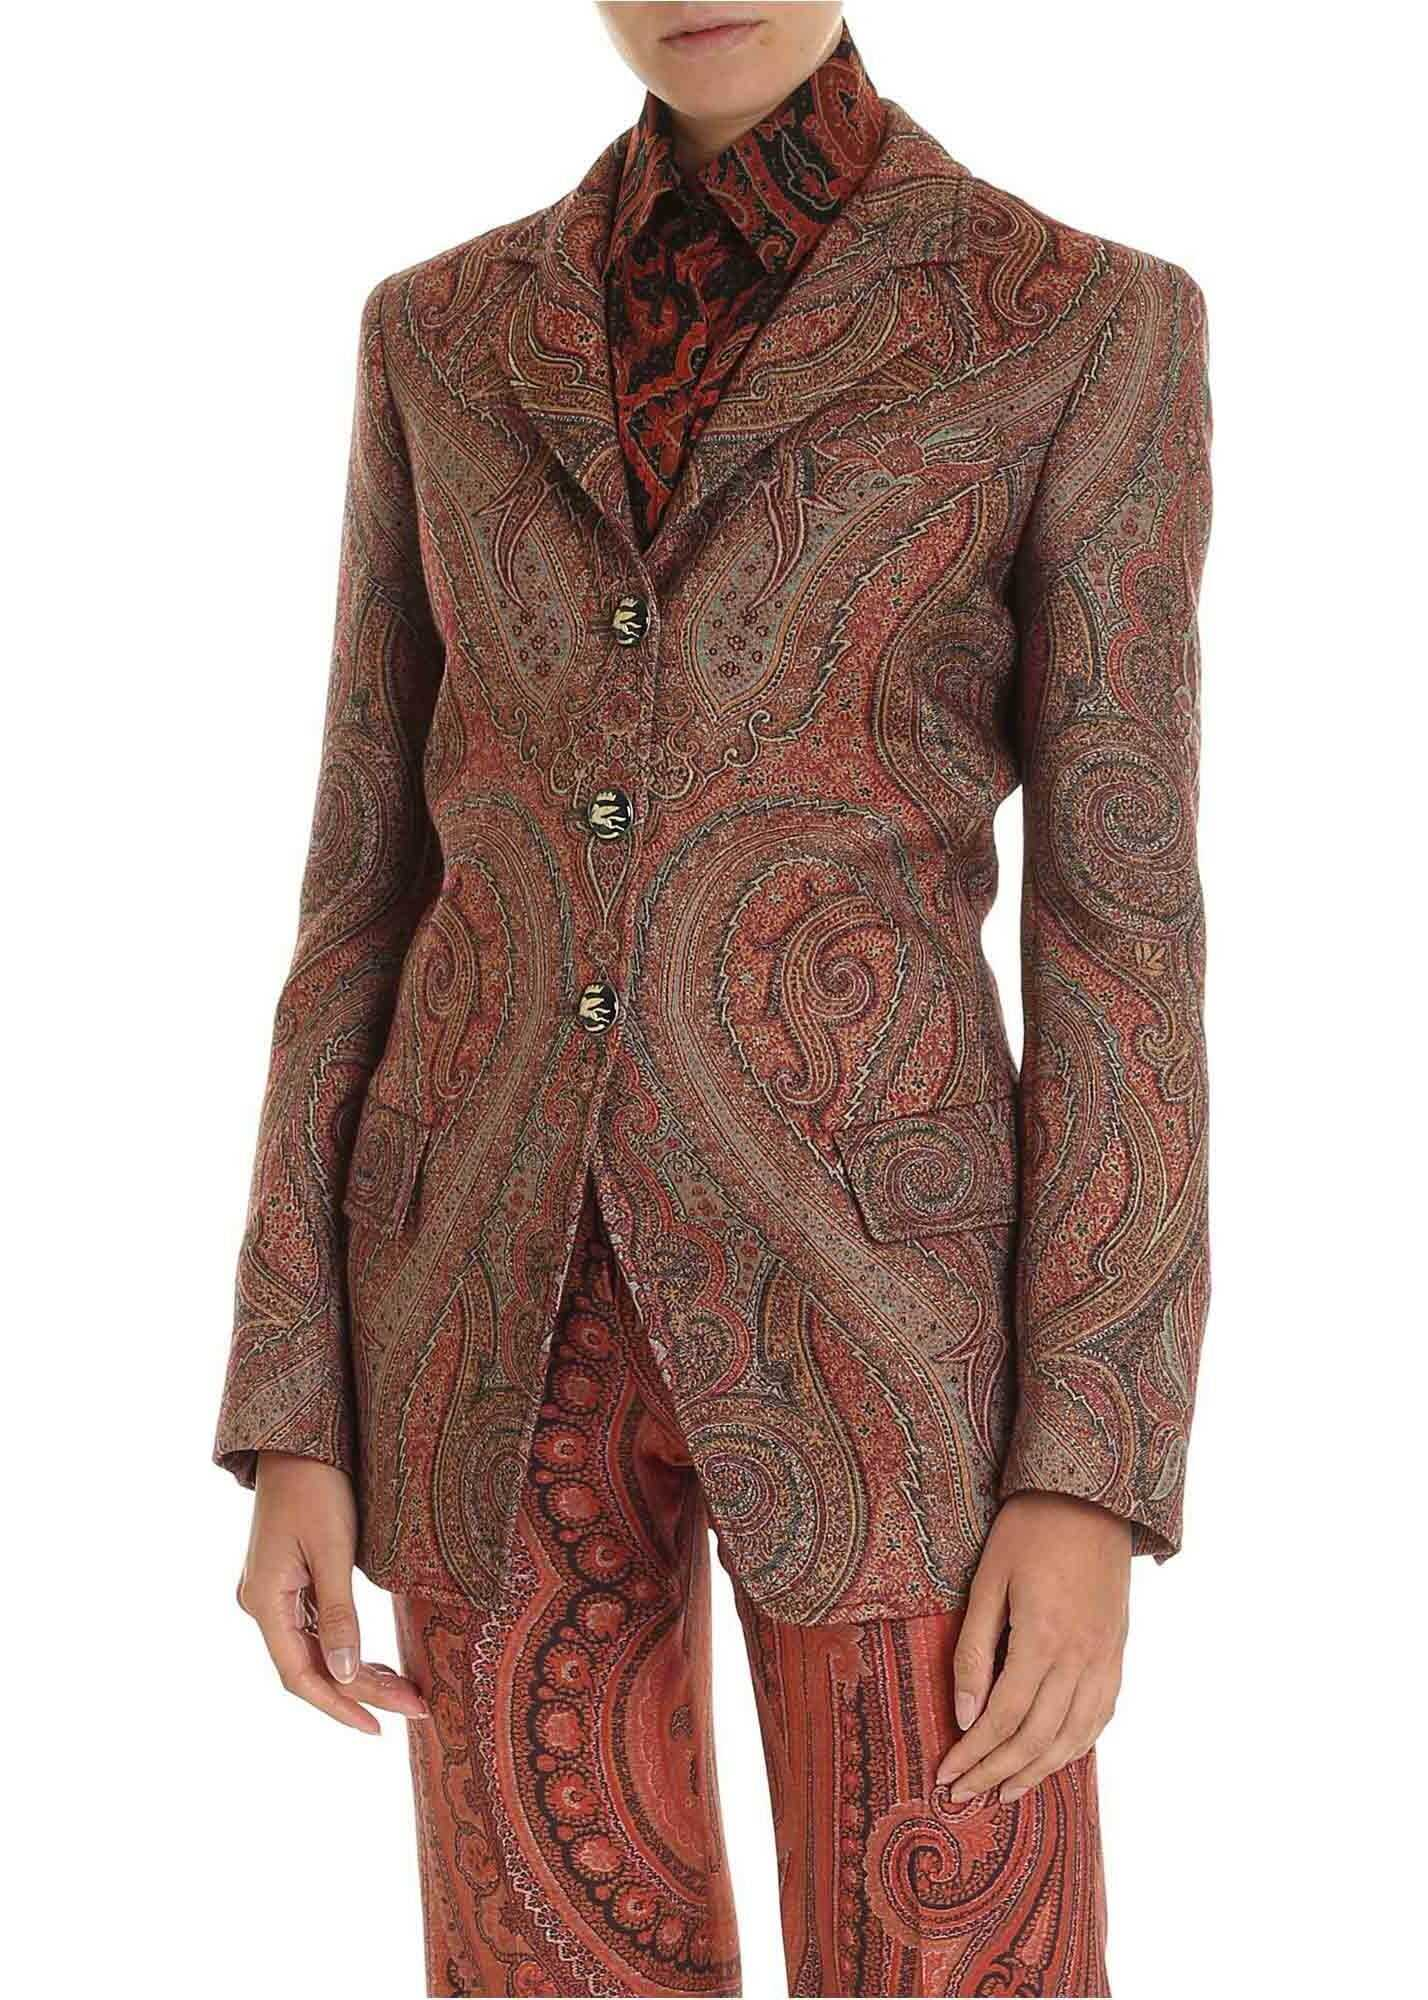 ETRO Jacket In Shades Of Brown With Arabesque Pattern thumbnail